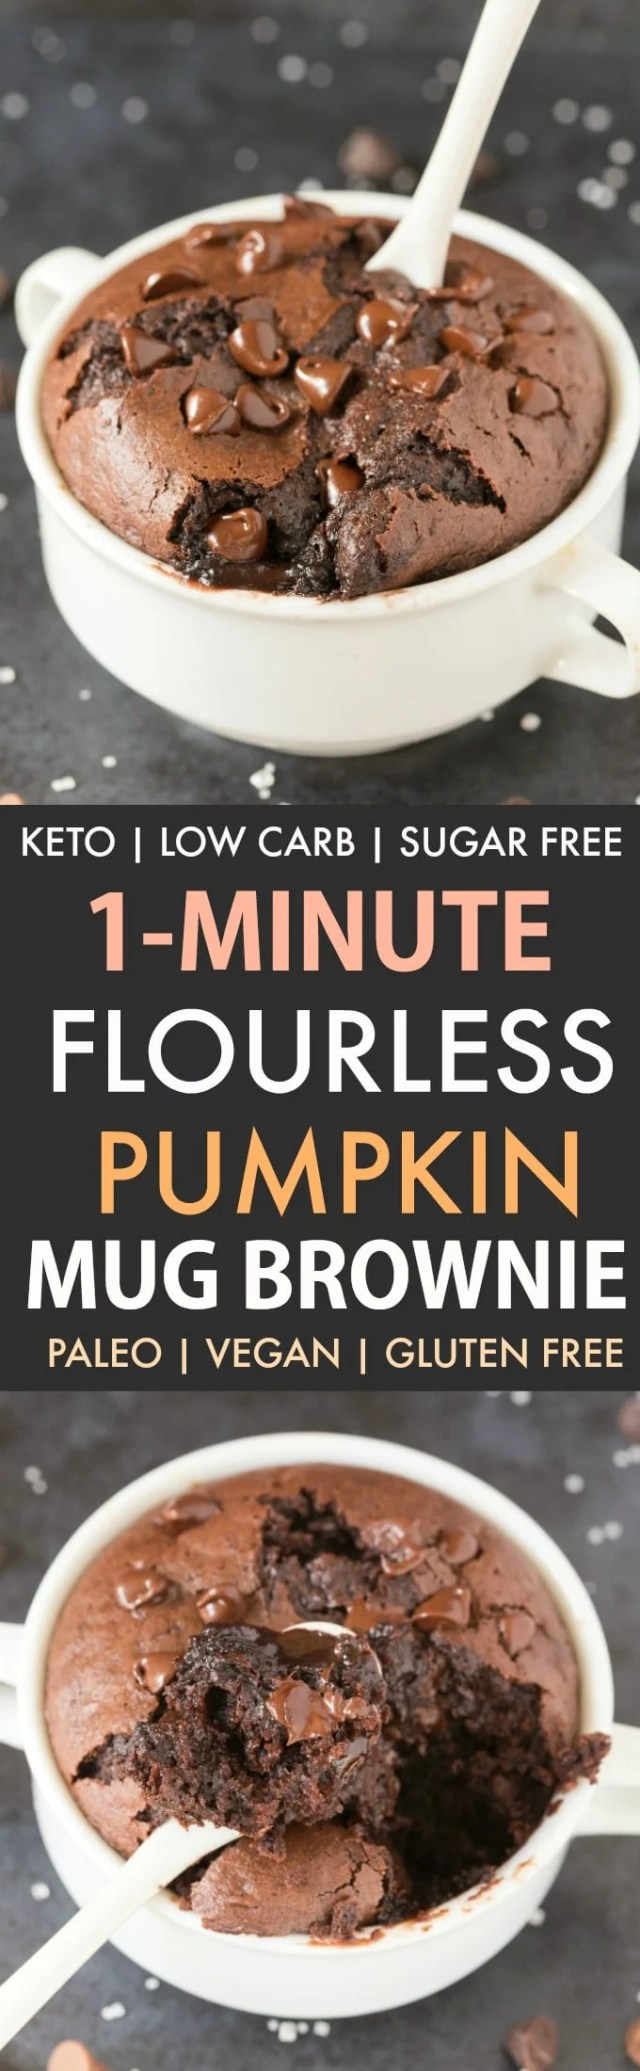 Healthy 1-Minute Flourless Mug Brownie in a collage